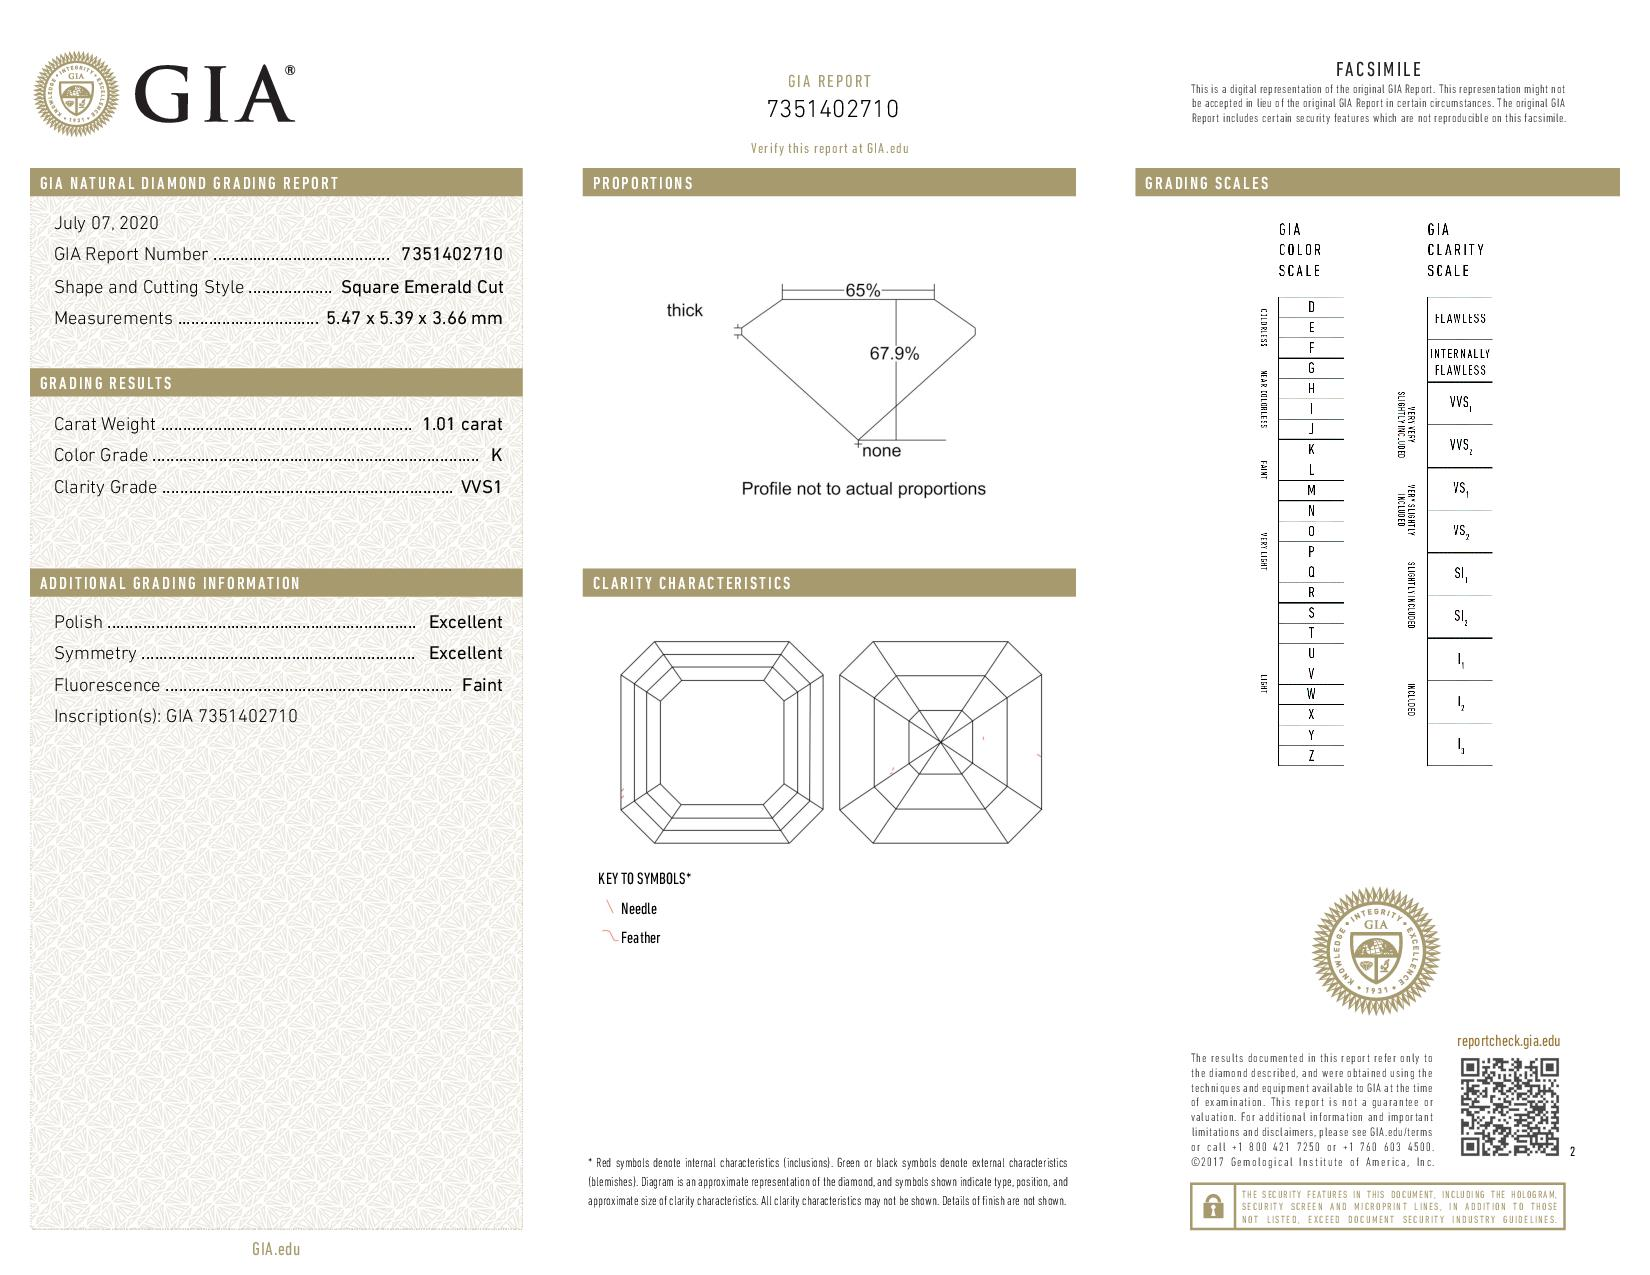 This is a 1.01 carat asscher shape, K color, VVS1 clarity natural diamond accompanied by a GIA grading report.